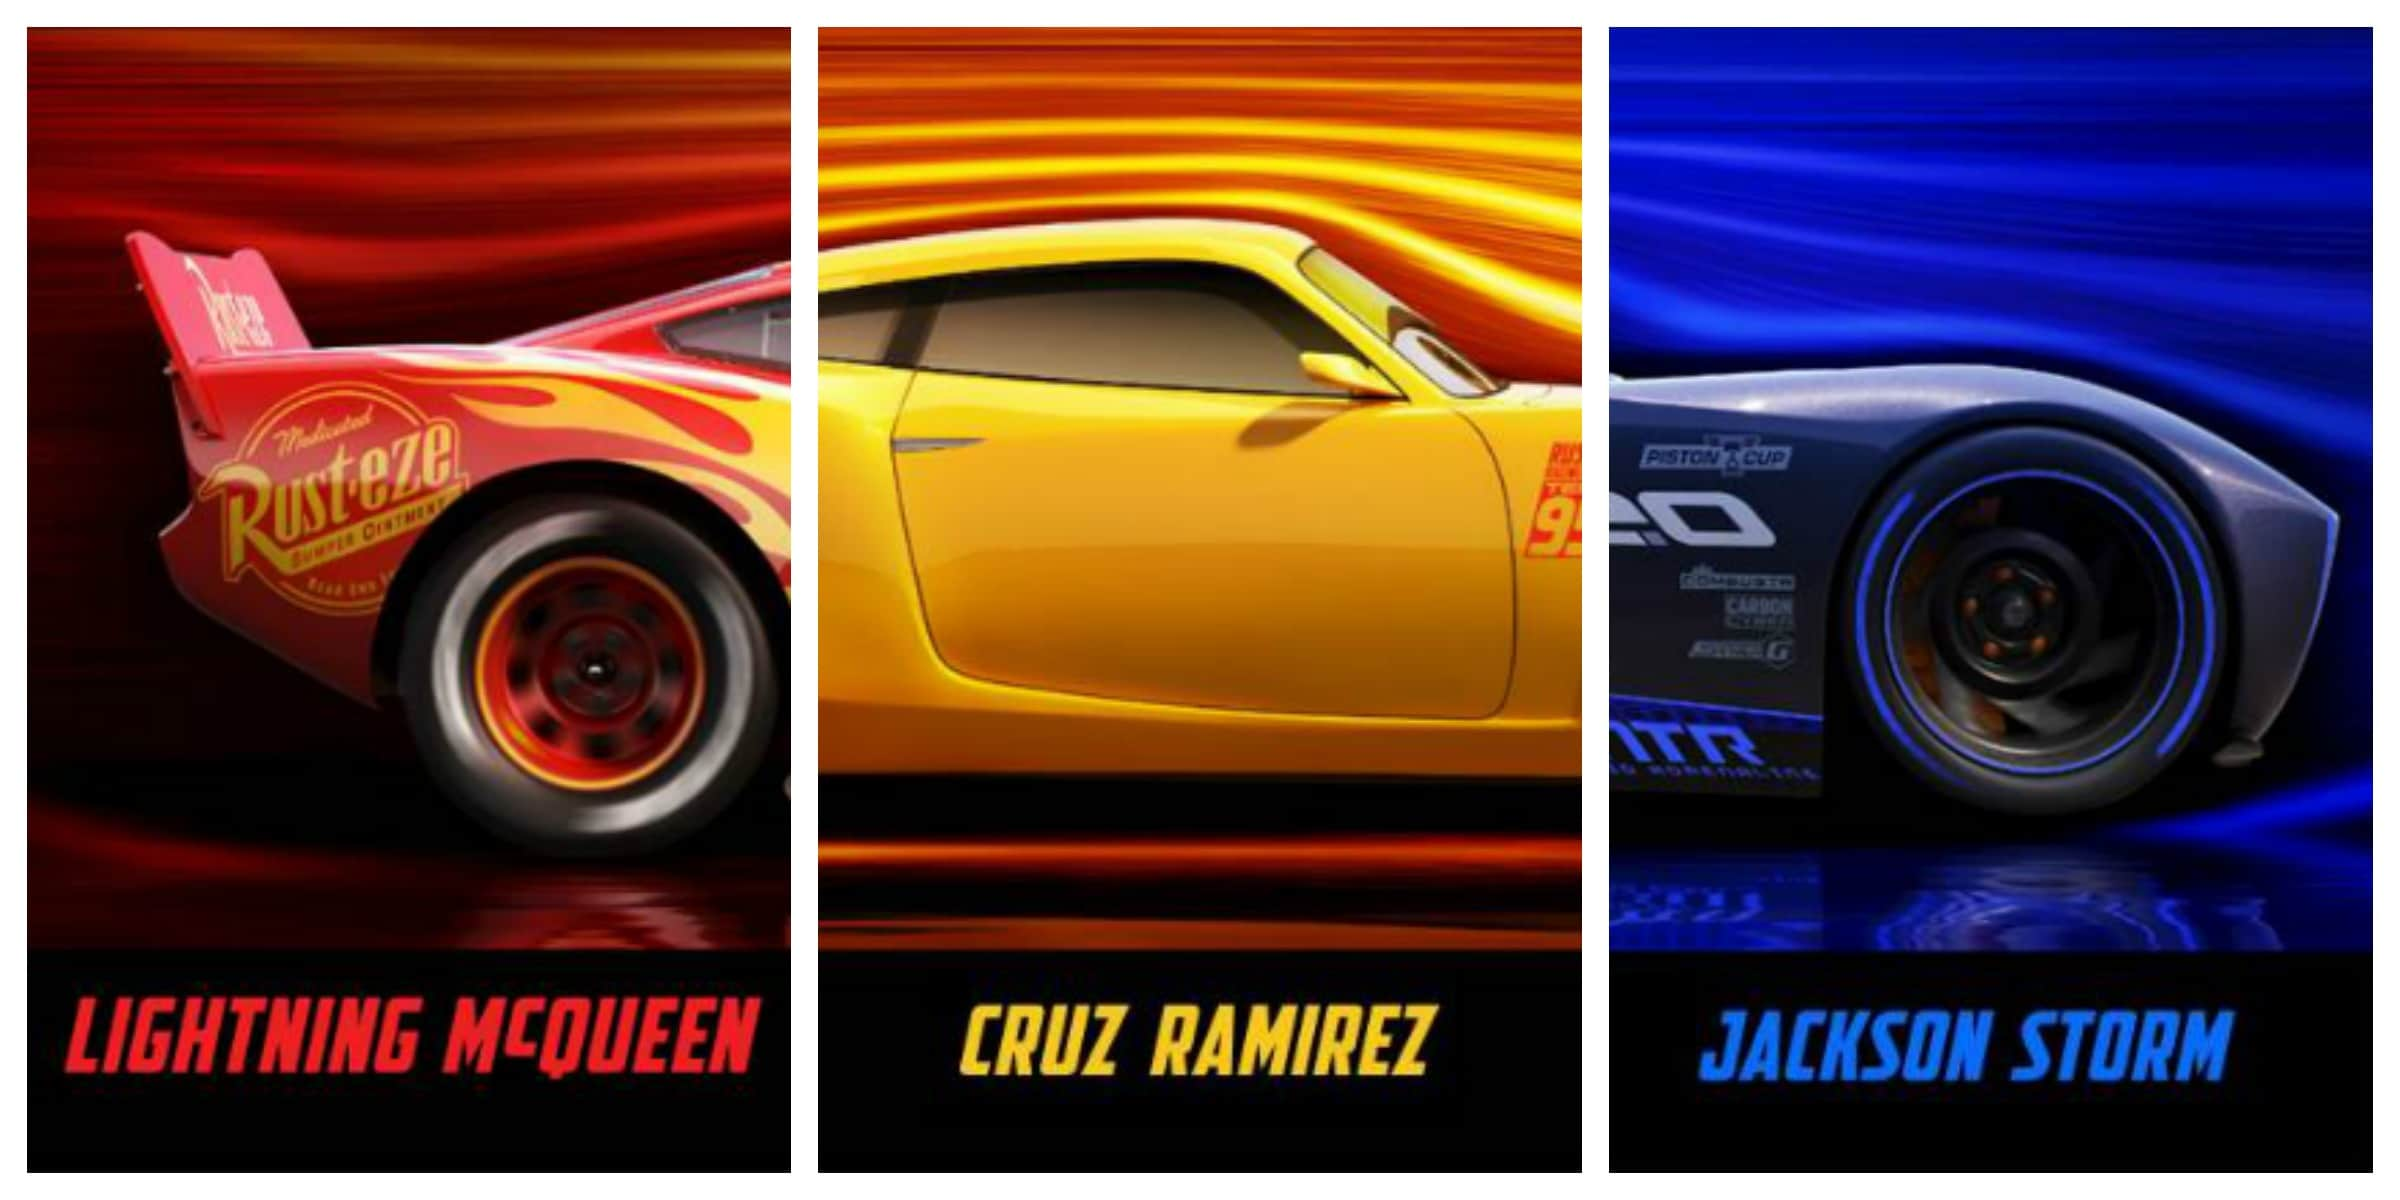 Cristela Alonzo, Owen Wilson, & Armie Hammer star in the upcoming Disney Cars 3. Meet the characters & Cast of Cars 3 here. Cars 3 hits theaters June 16.